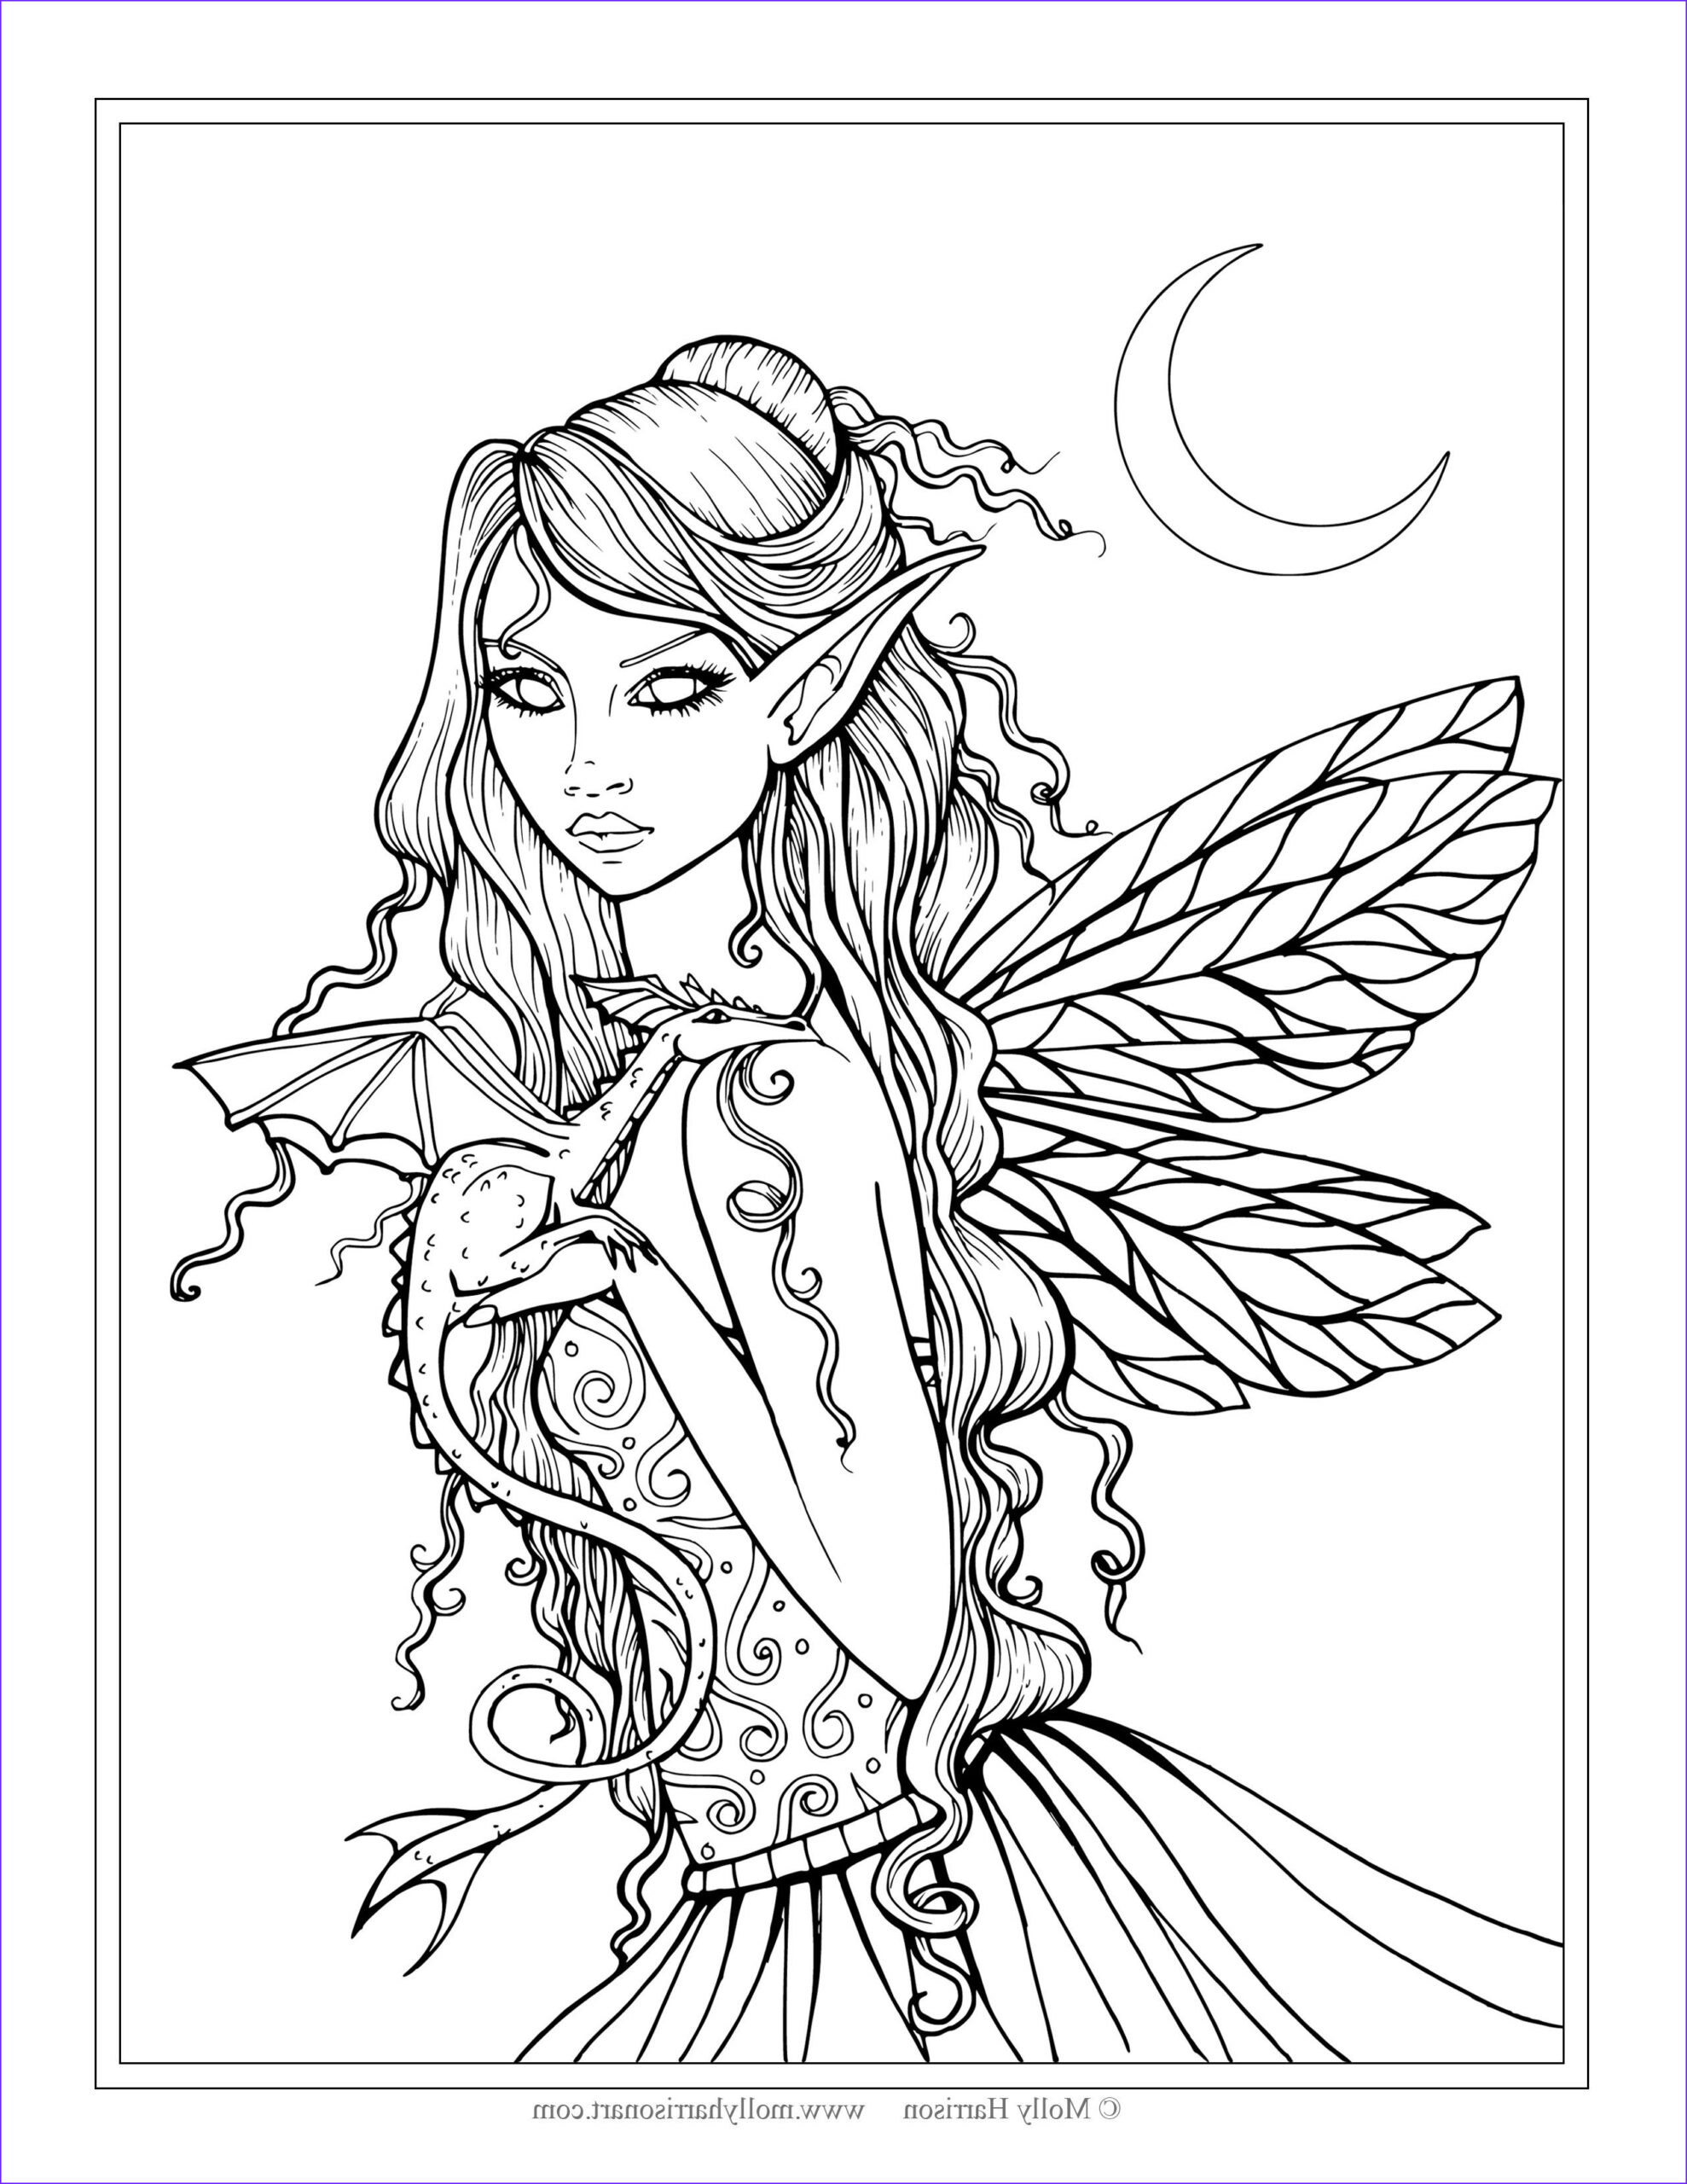 Fantasy Adult Coloring Book Luxury Photography Free Fairy and Dragon Coloring Page by Molly Harrison